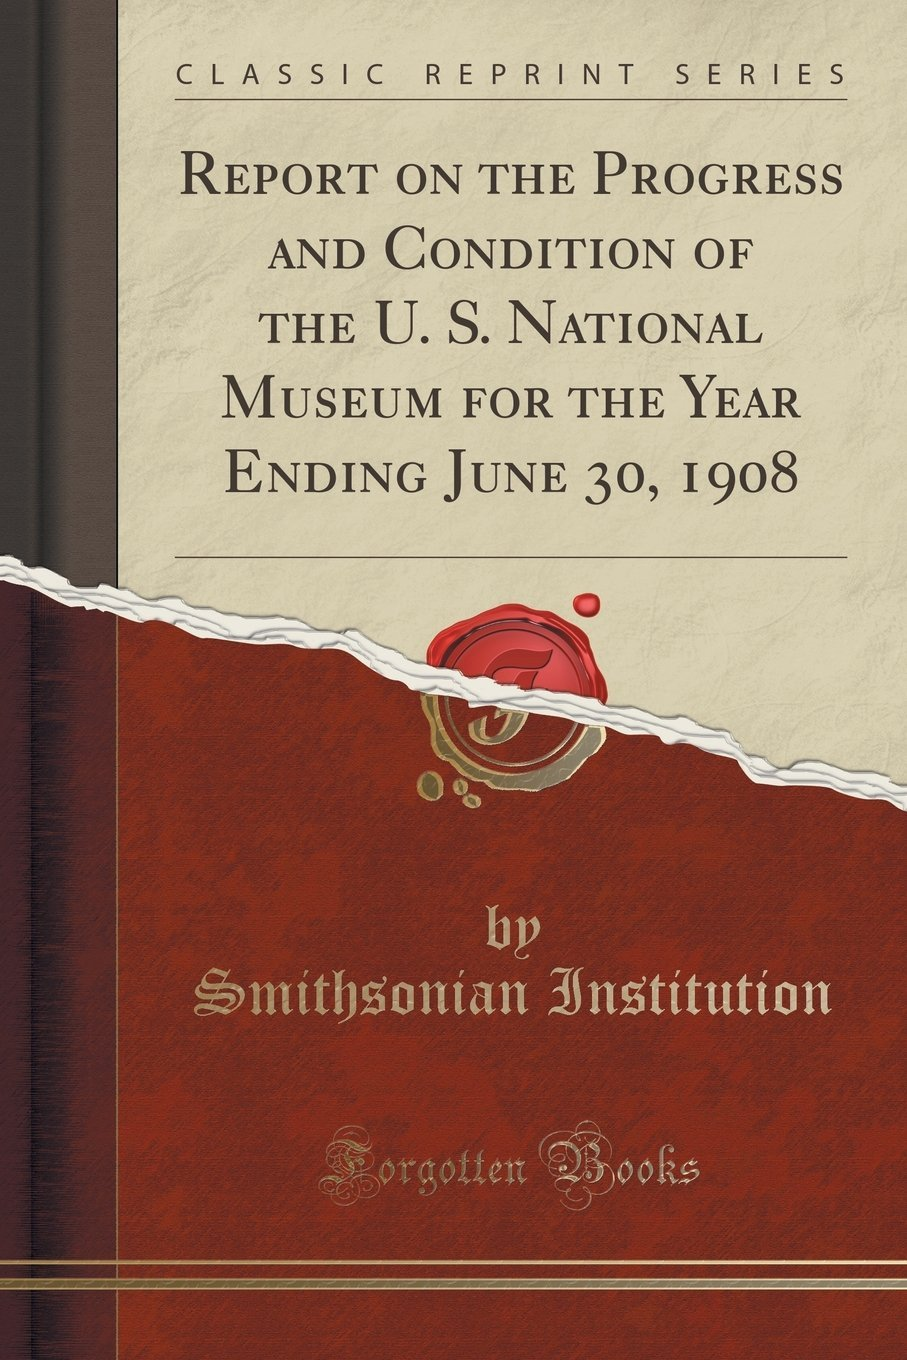 Download Report on the Progress and Condition of the U. S. National Museum for the Year Ending June 30, 1908 (Classic Reprint) pdf